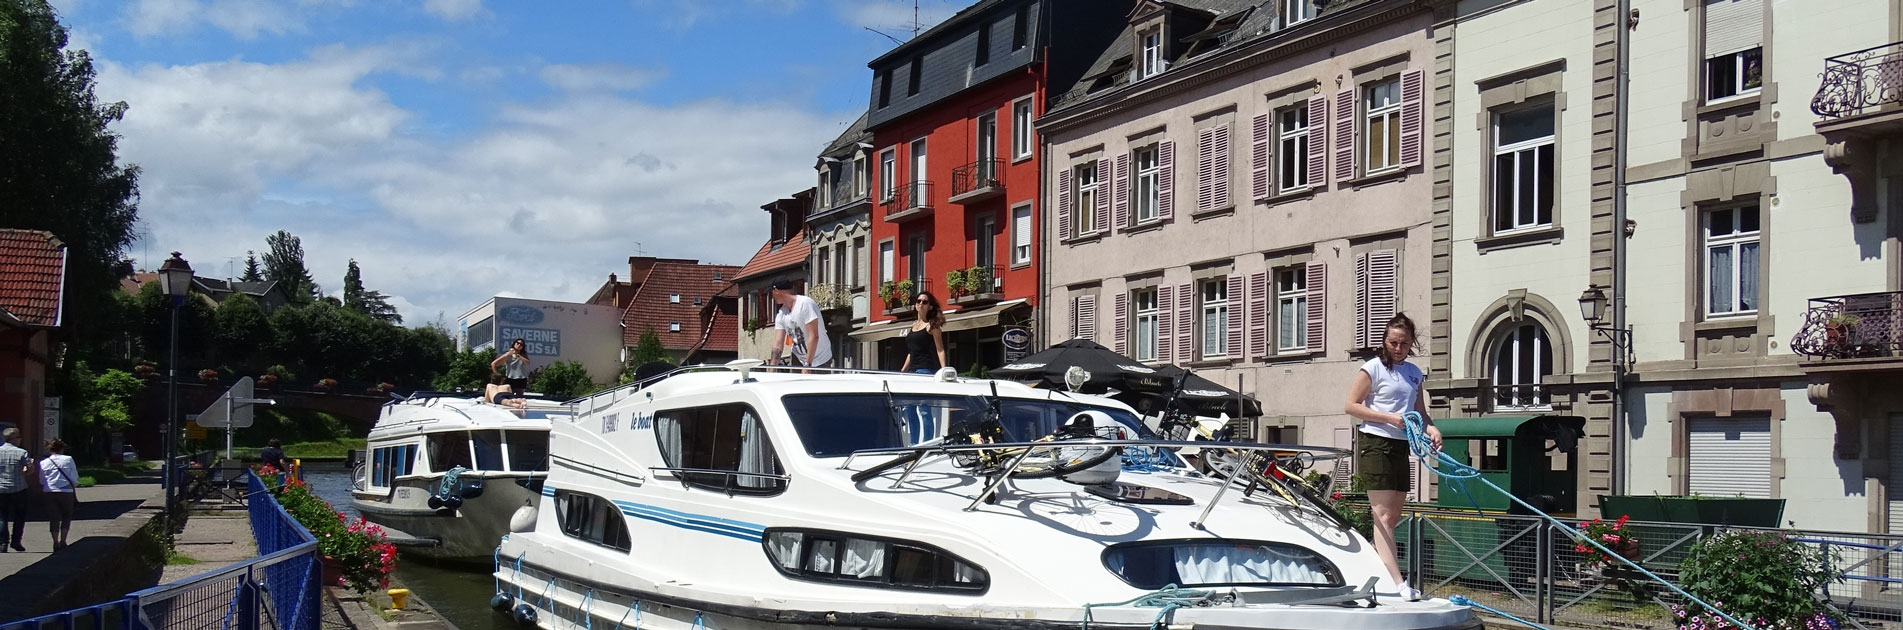 Riverboats in Alsace